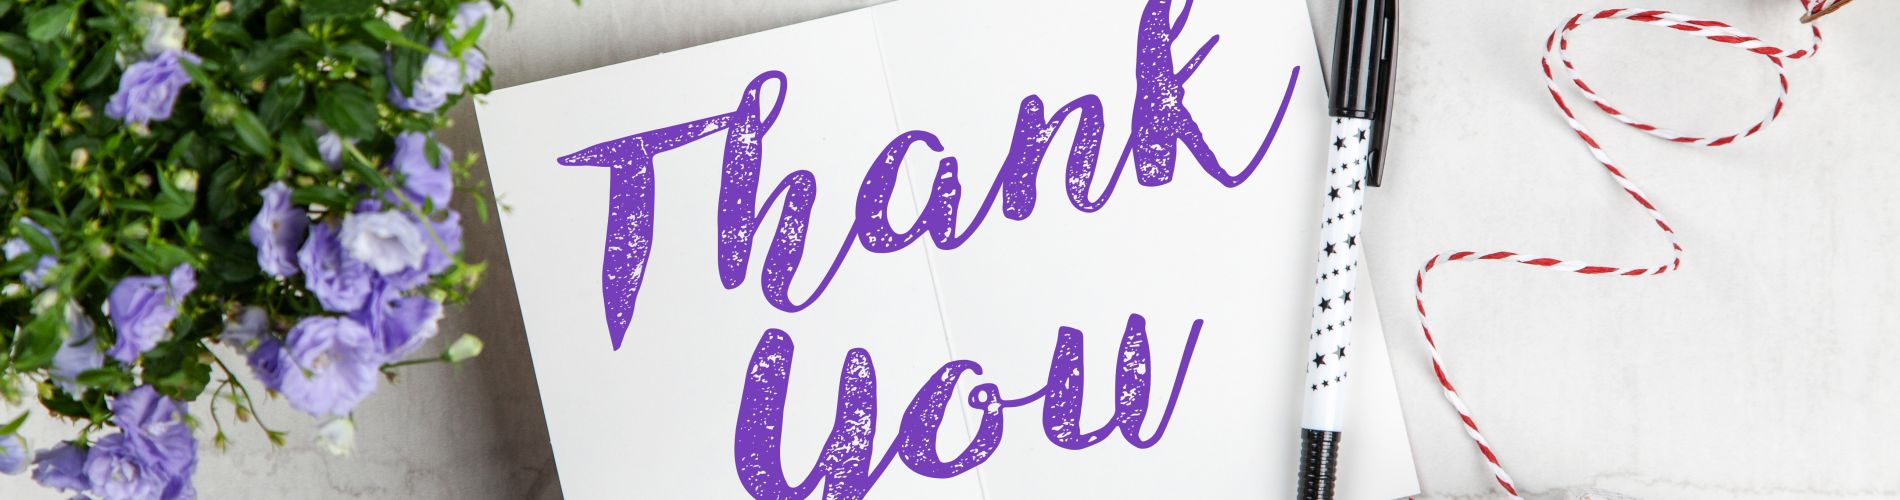 a thank you note with purple flowers